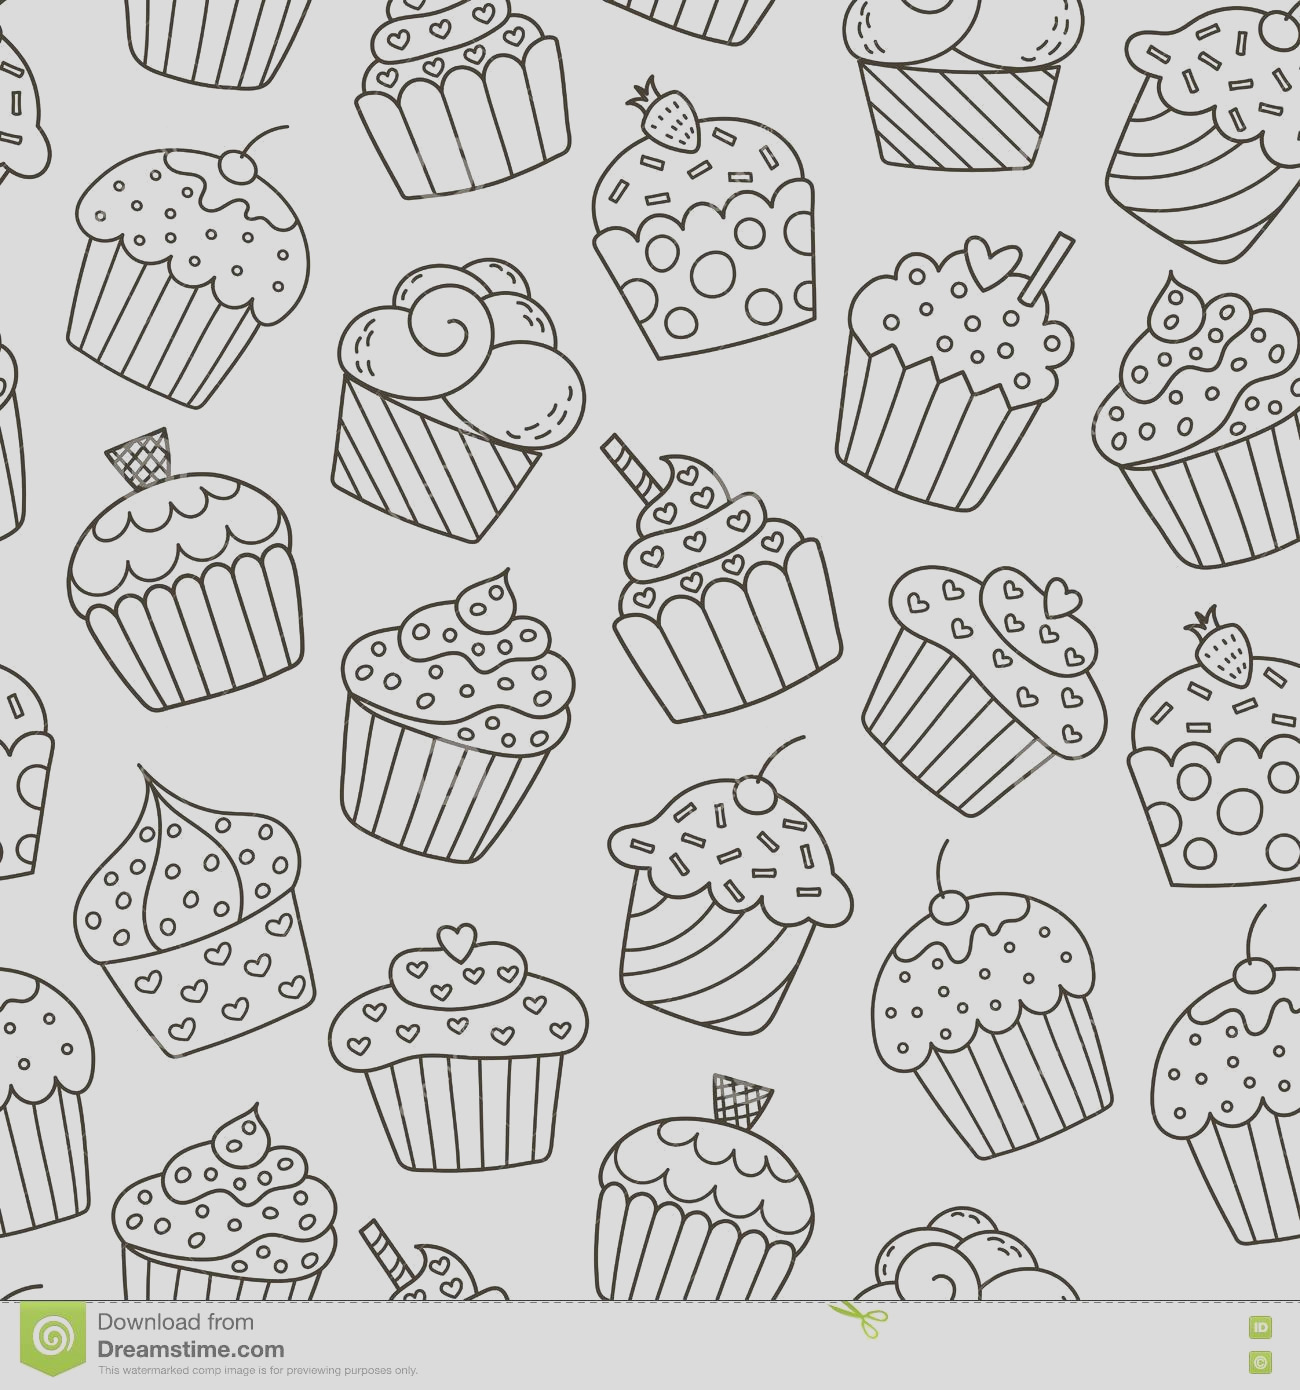 stock illustration monochrome cupcakes seamless pattern black white sweet background great coloring book wrapping printing fabric textile image